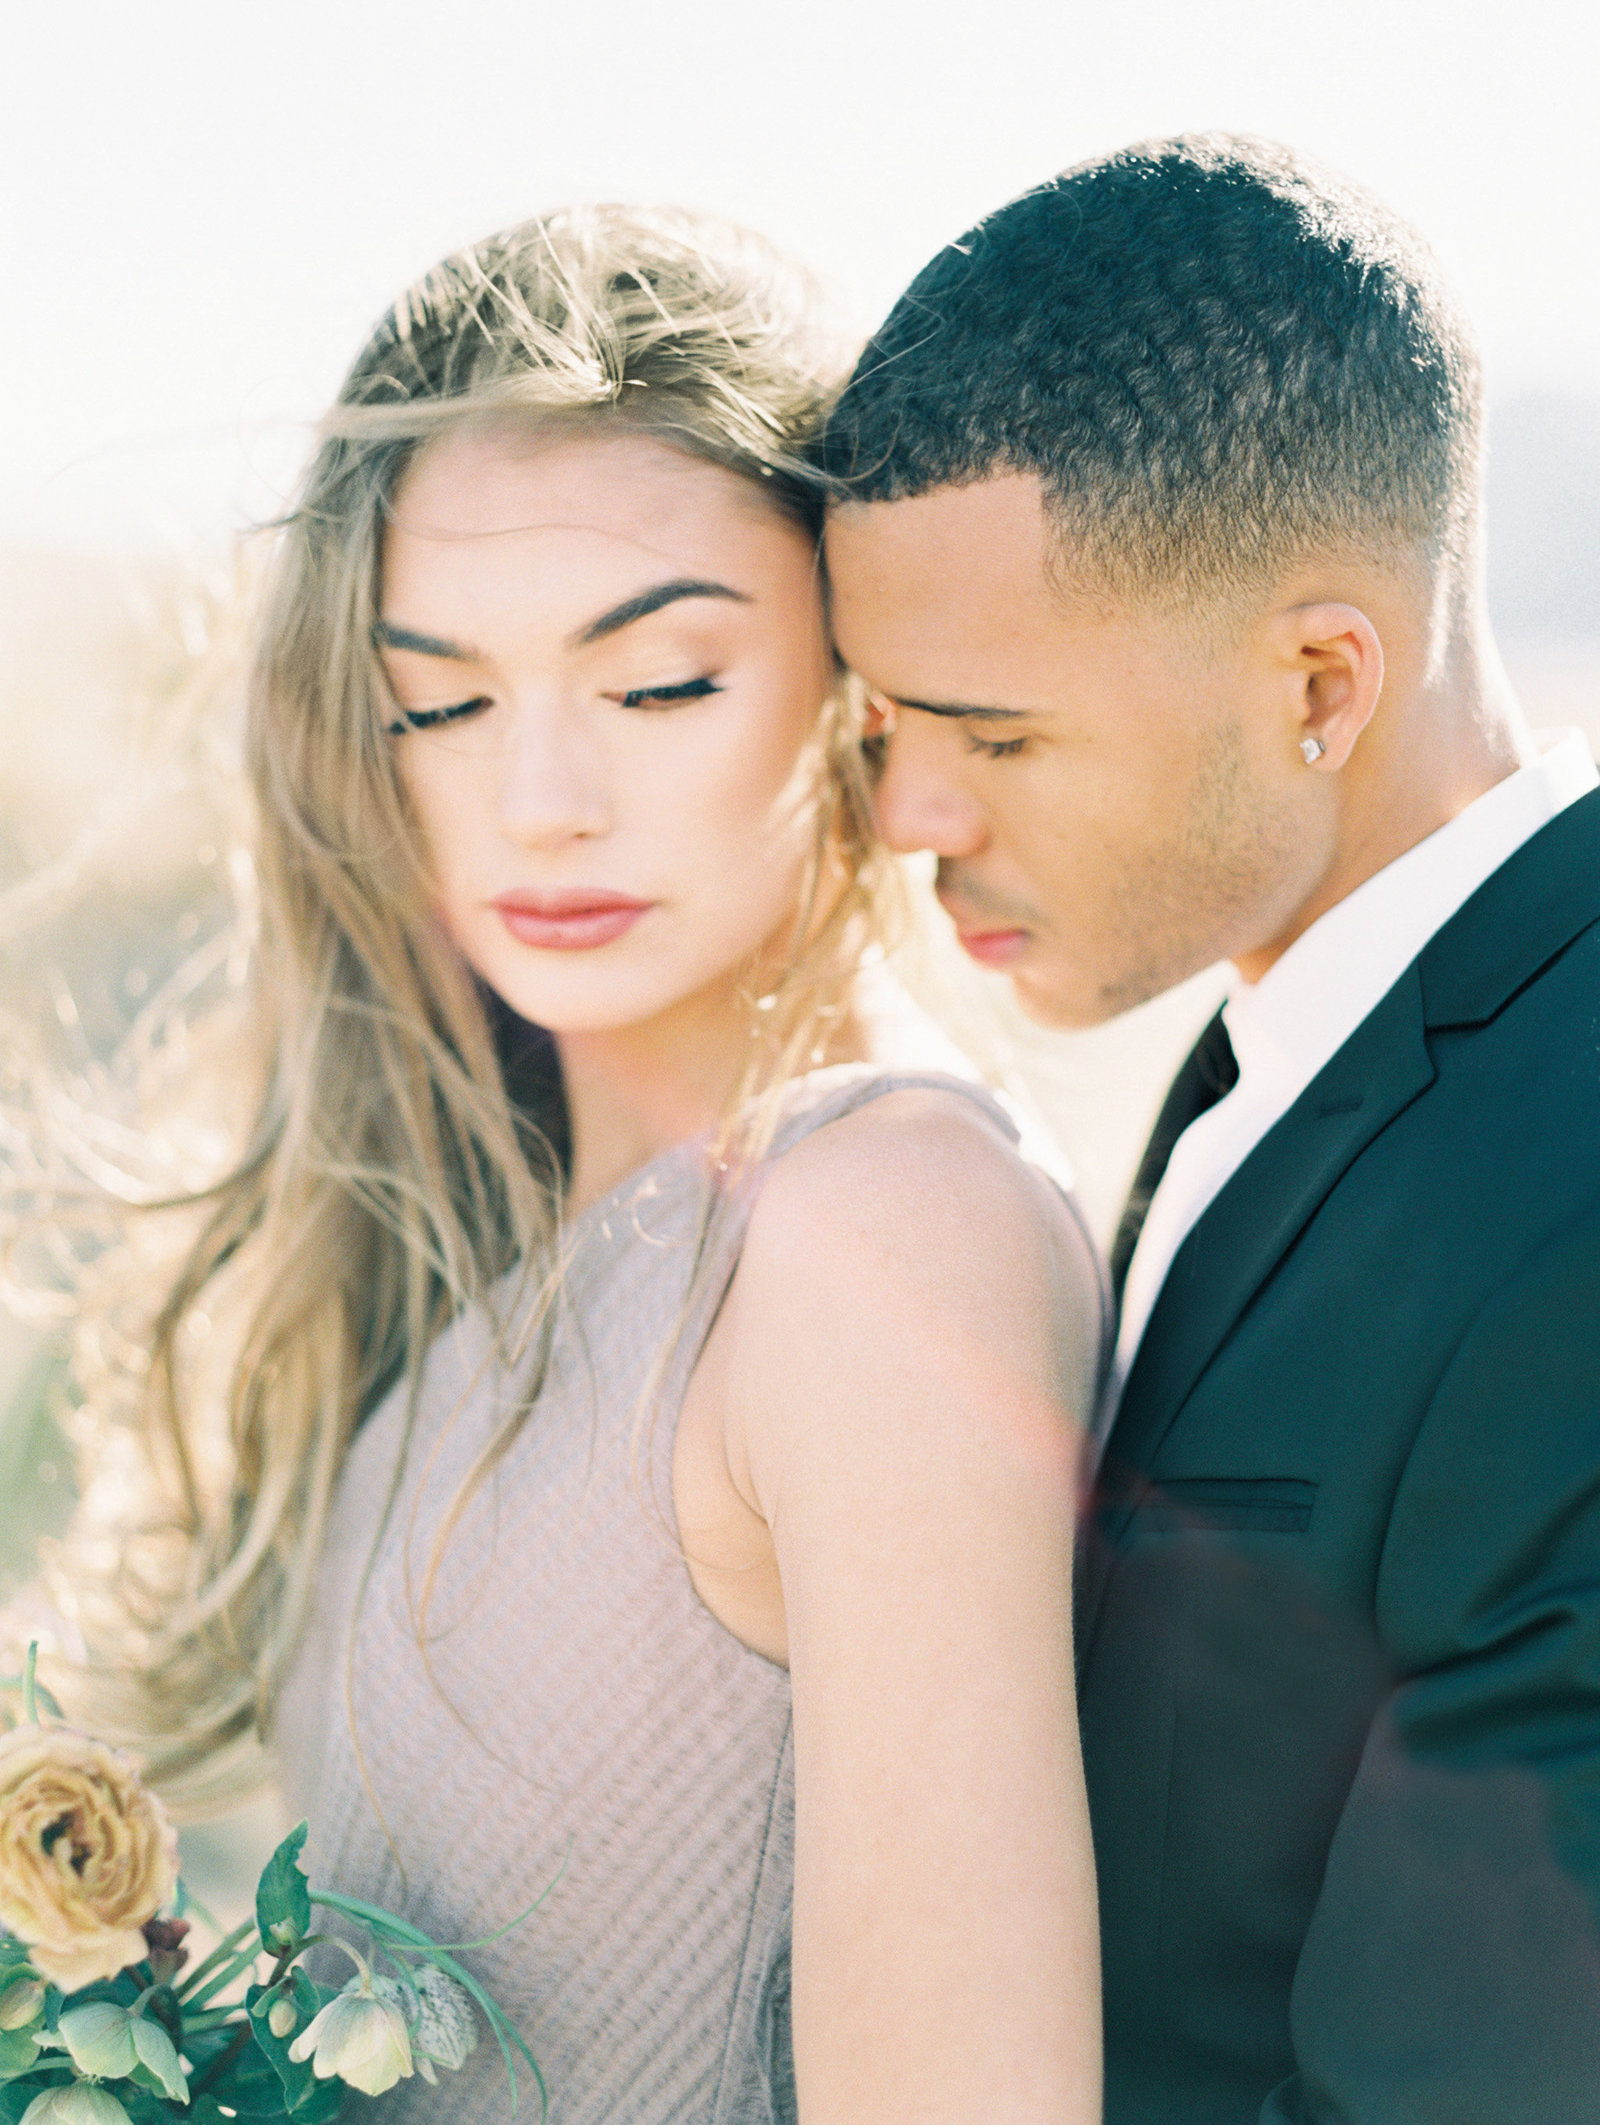 Mandy-Ford-Photography-Las-Vegas-Wedding-Editorial-29